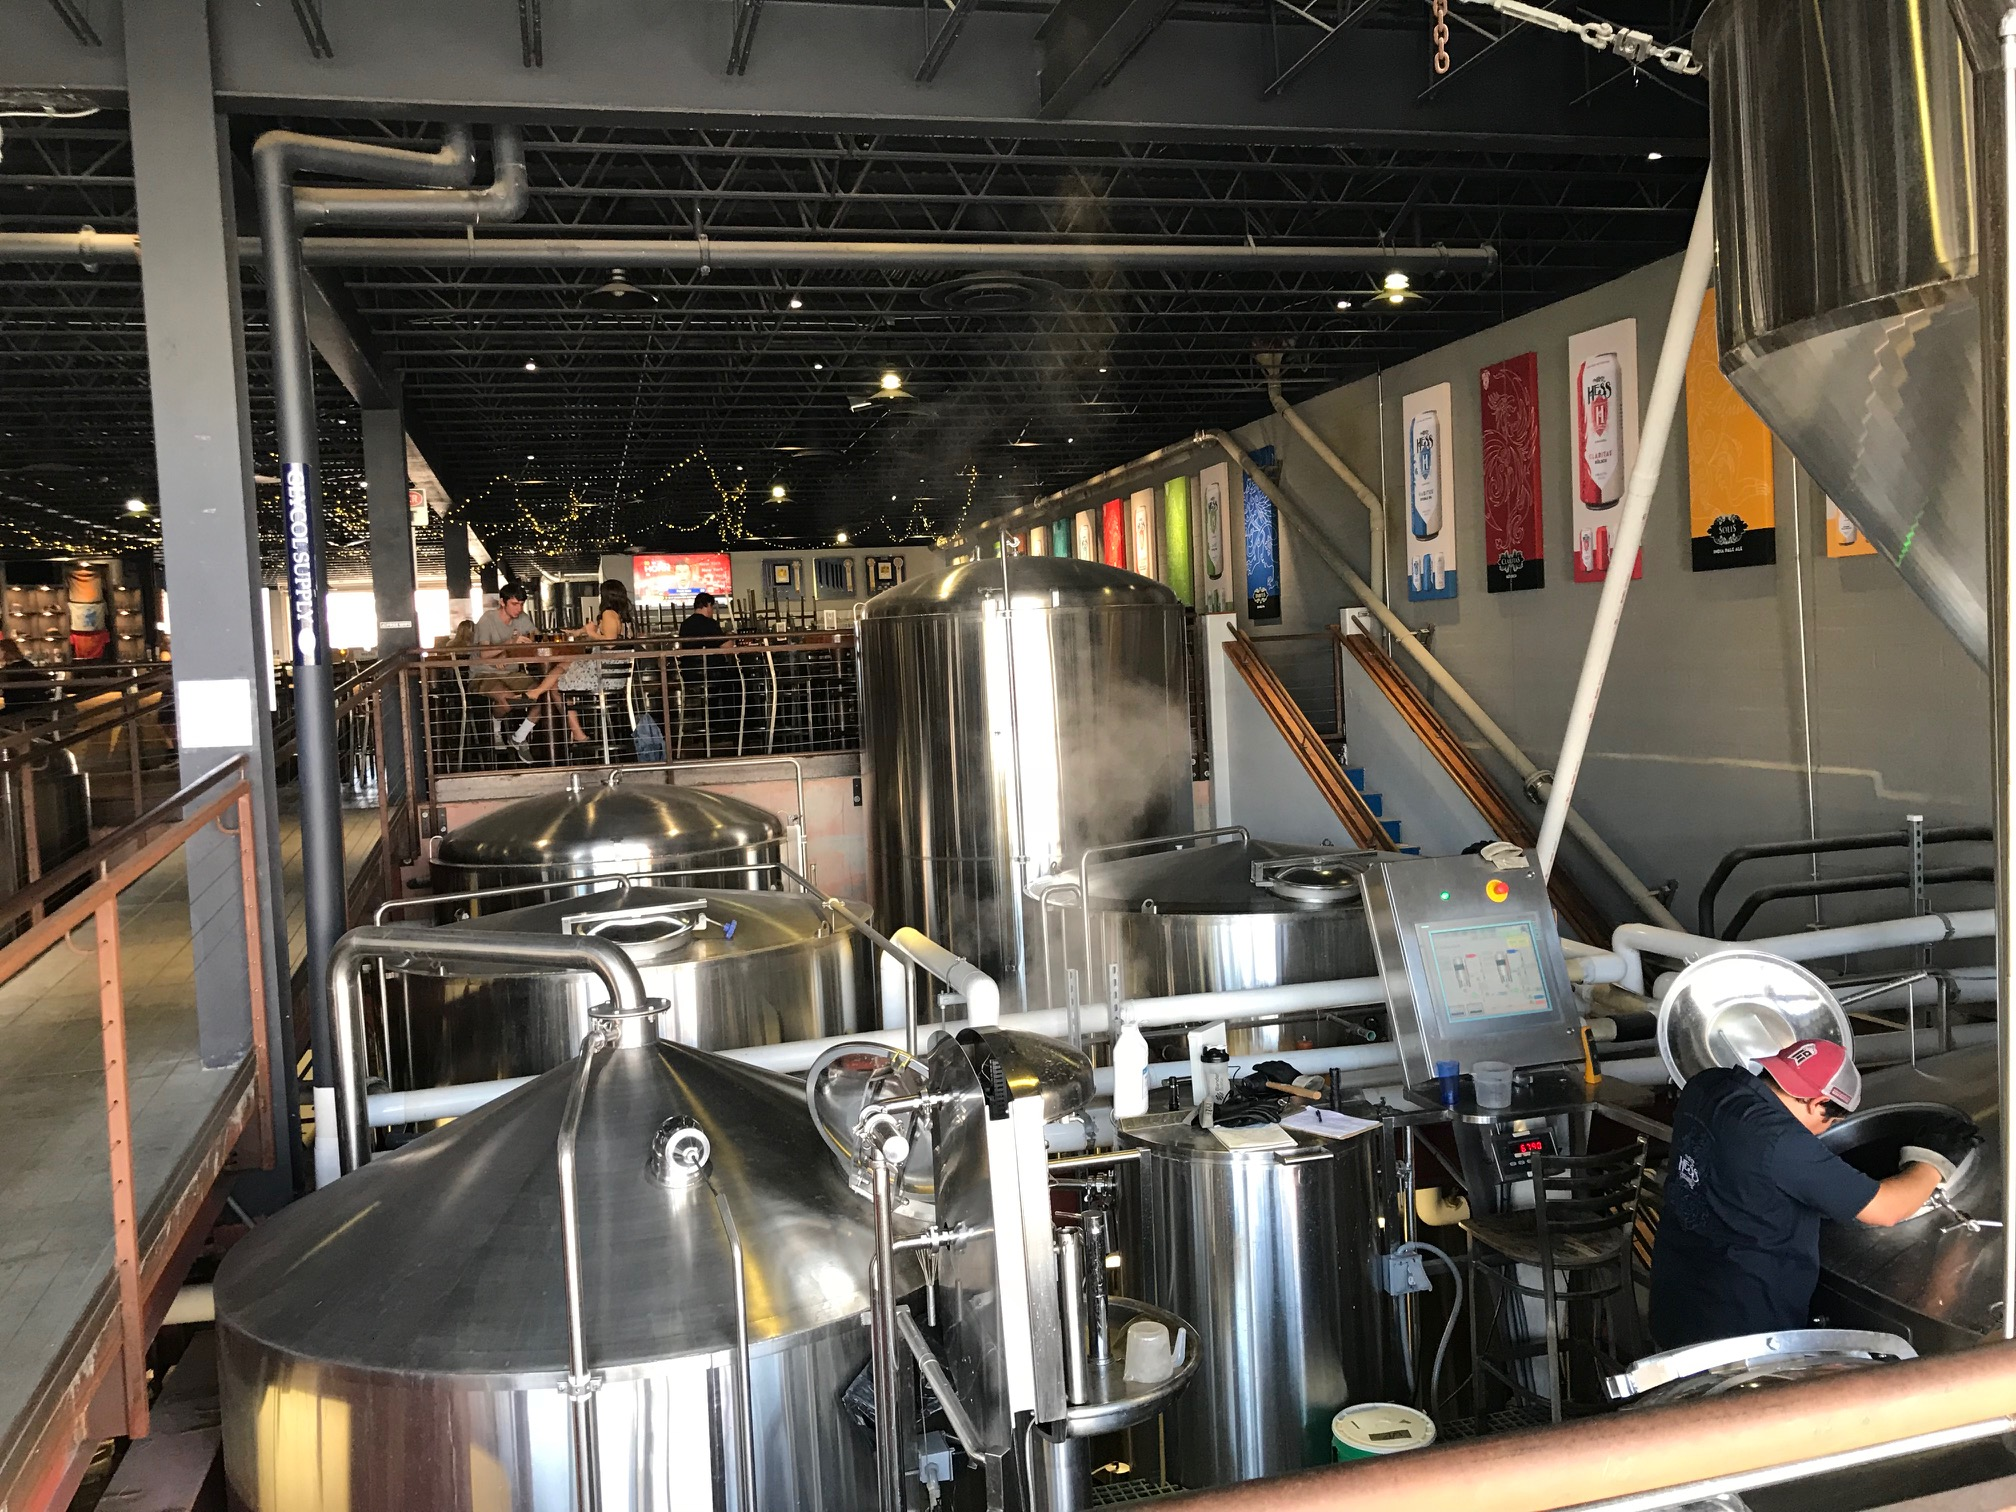 Mike Hess Brewing facility north park san diego